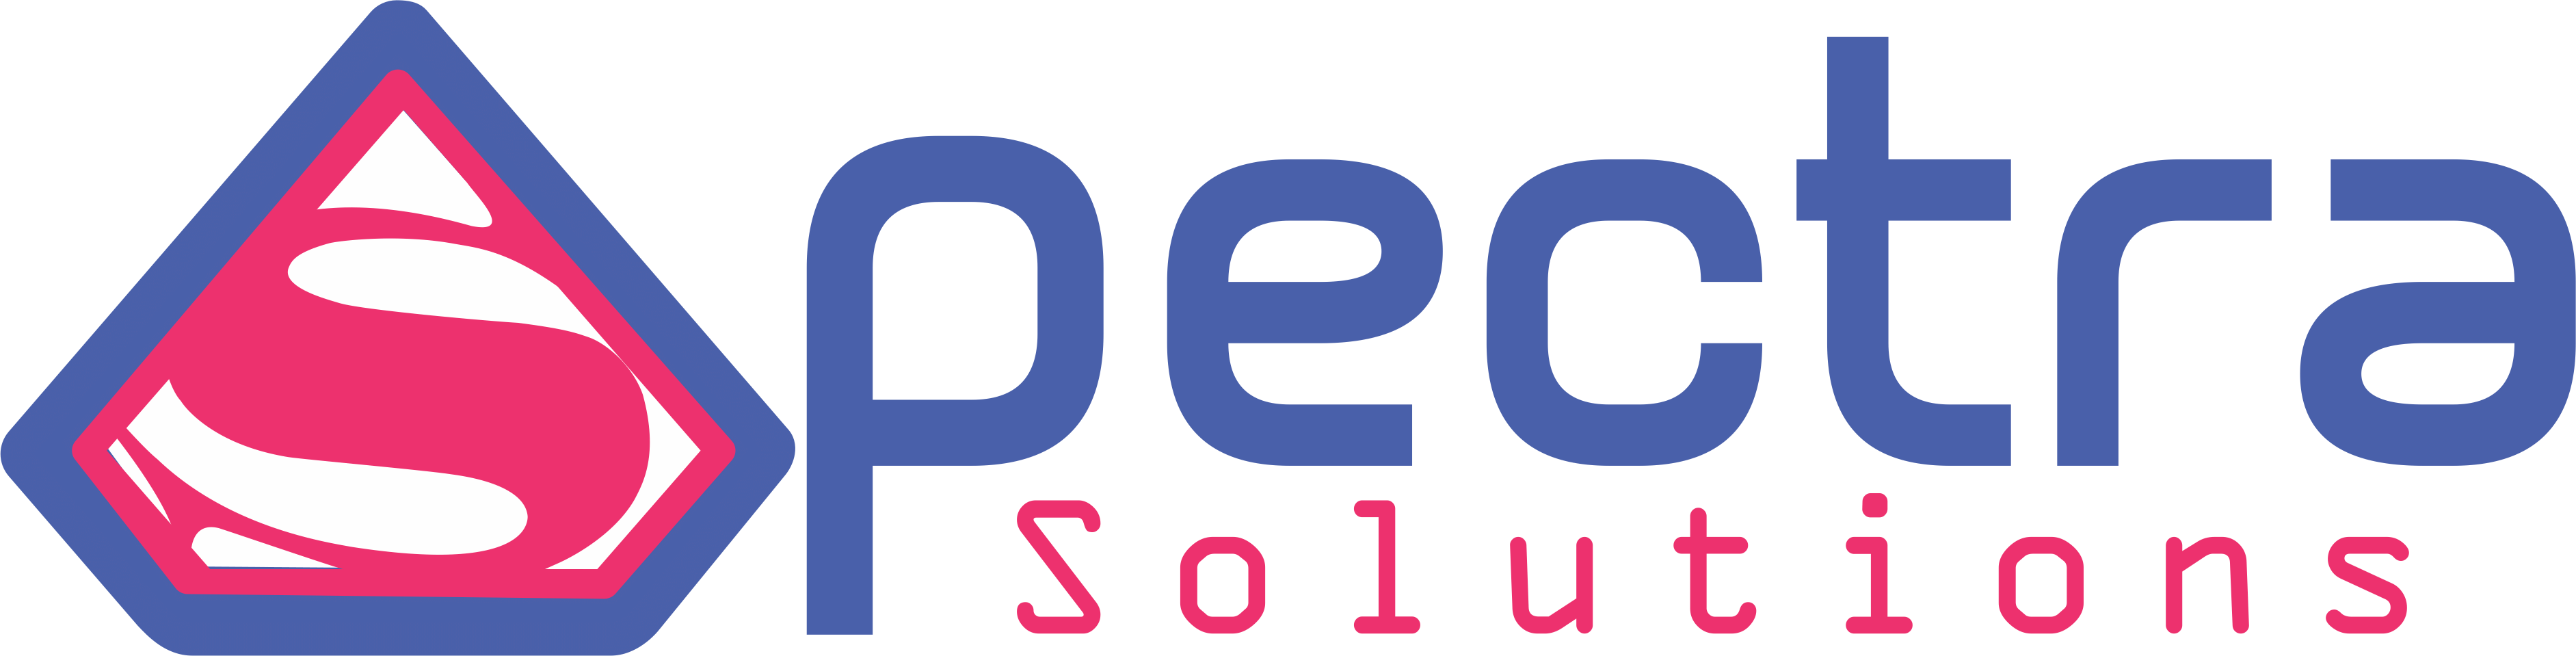 Spectra Solutions Logo